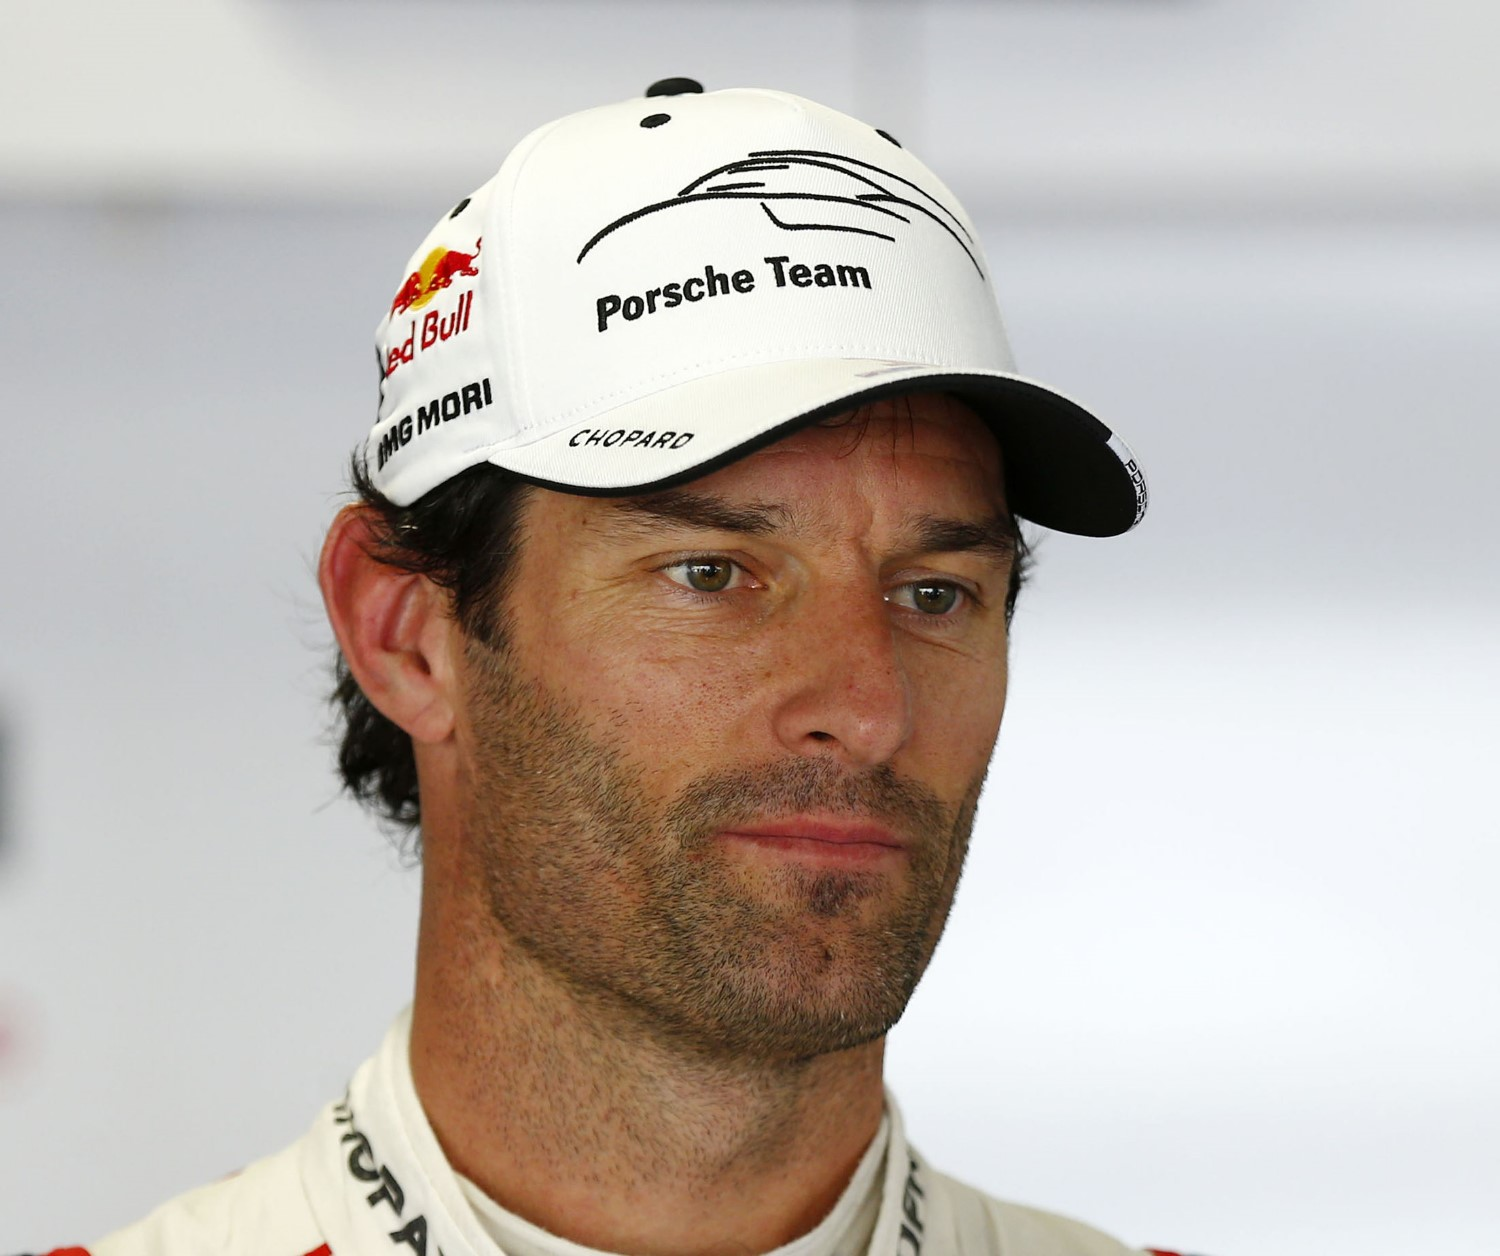 Not to worry Mark Webber, Ricciardo followed the money so he can retire comfortably. Period